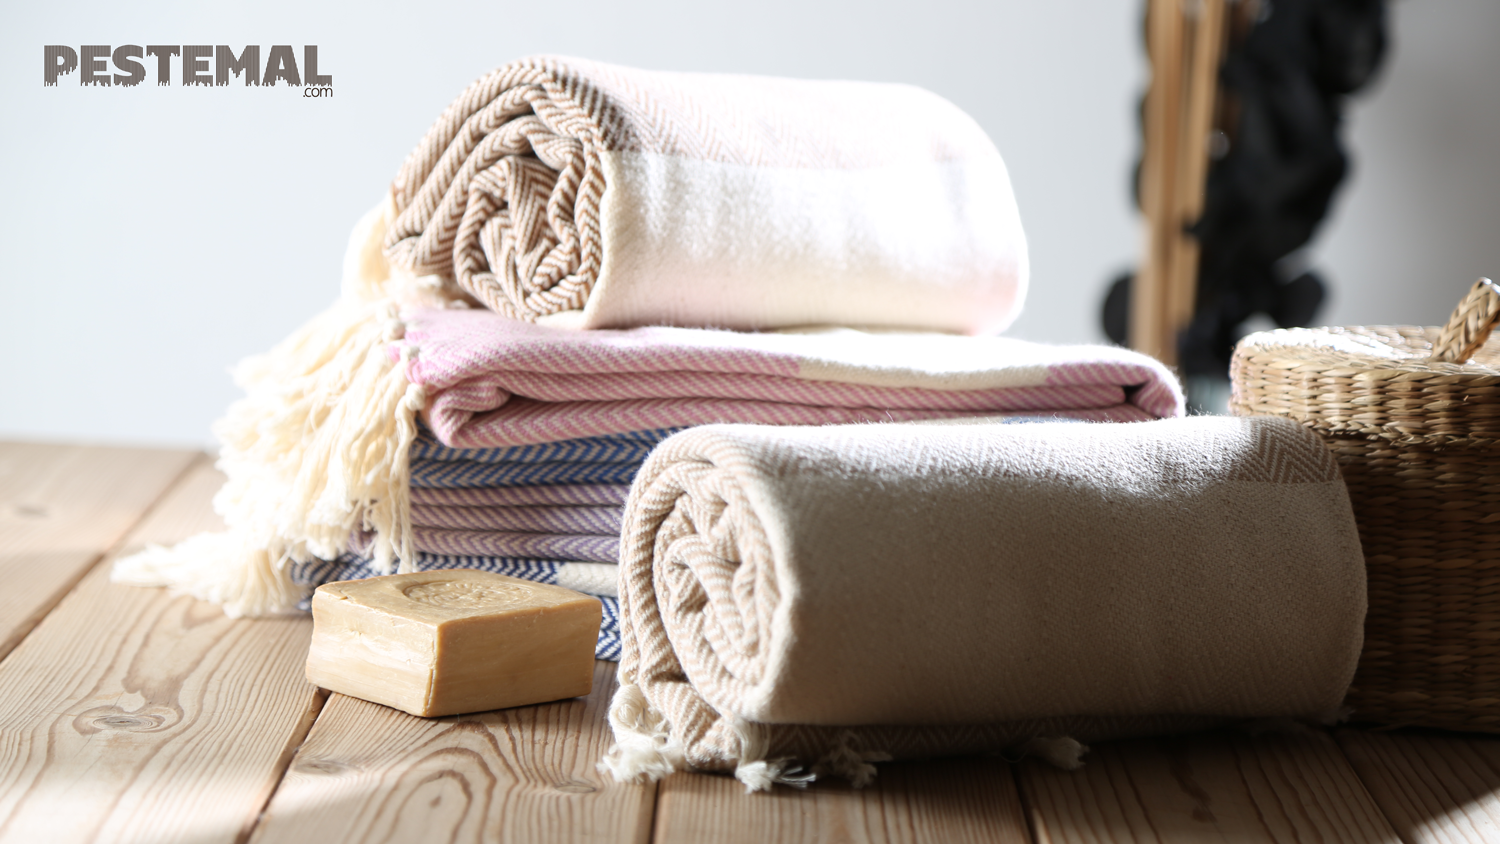 What should be taken into account when ordering wholesale pestemal towels?